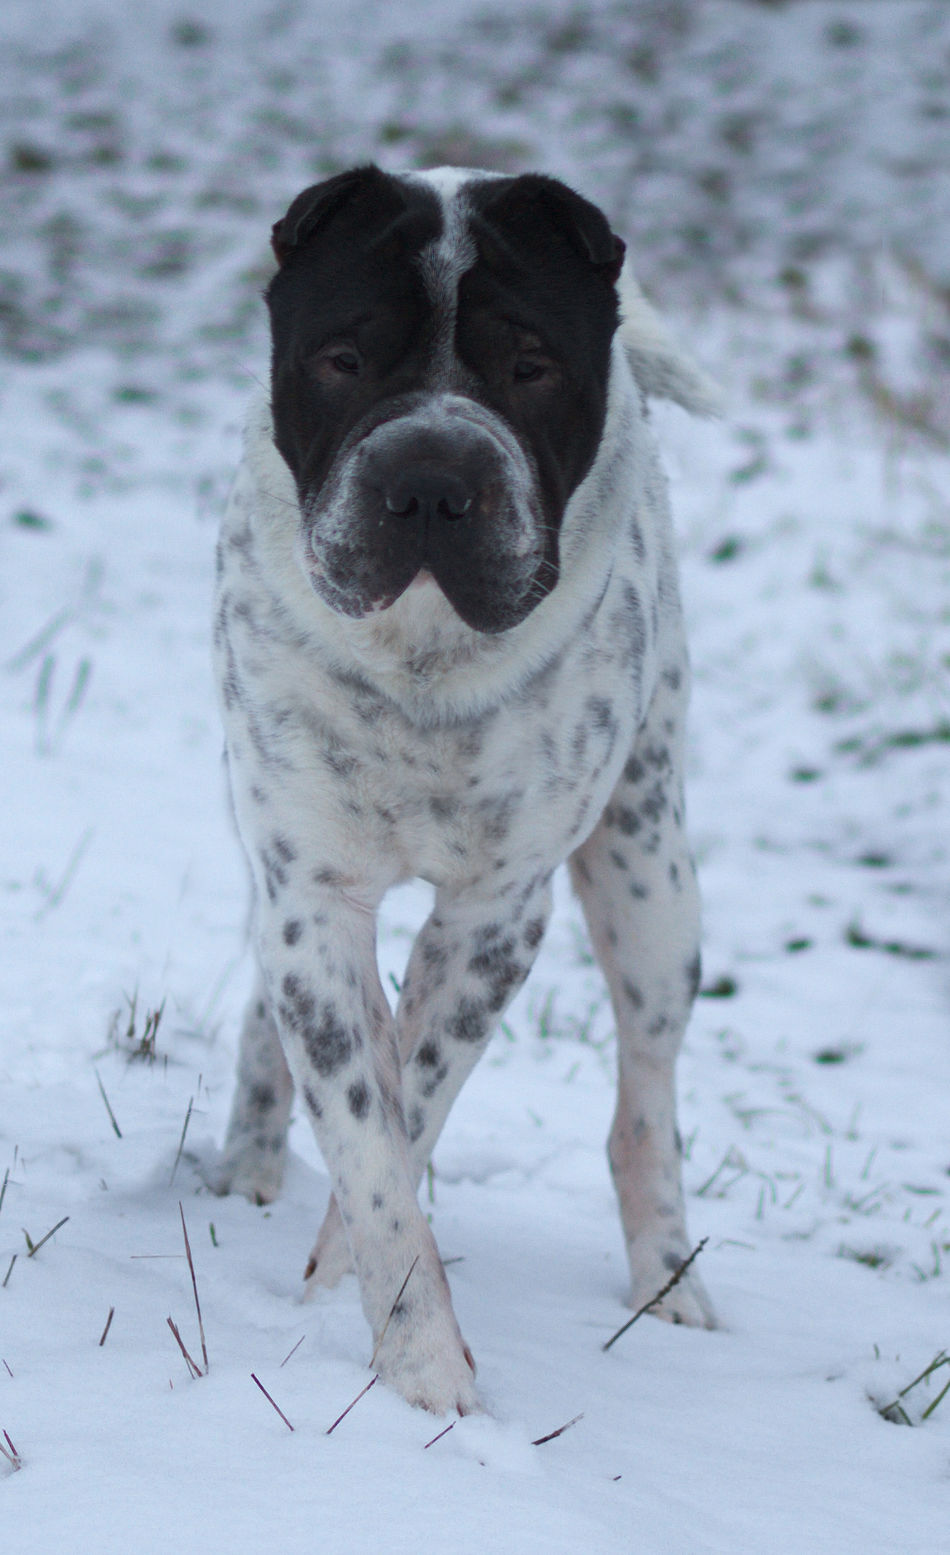 Looking At Camera Schnee Snow Dance Tanzen One Animal Pets Dog Animal Themes Outdoors Cold Temperature Winsen Celle Hundefotografie Hund Dog Photography Wolfsburg Braunschweig Hannover, Germany Domestic Animals No People